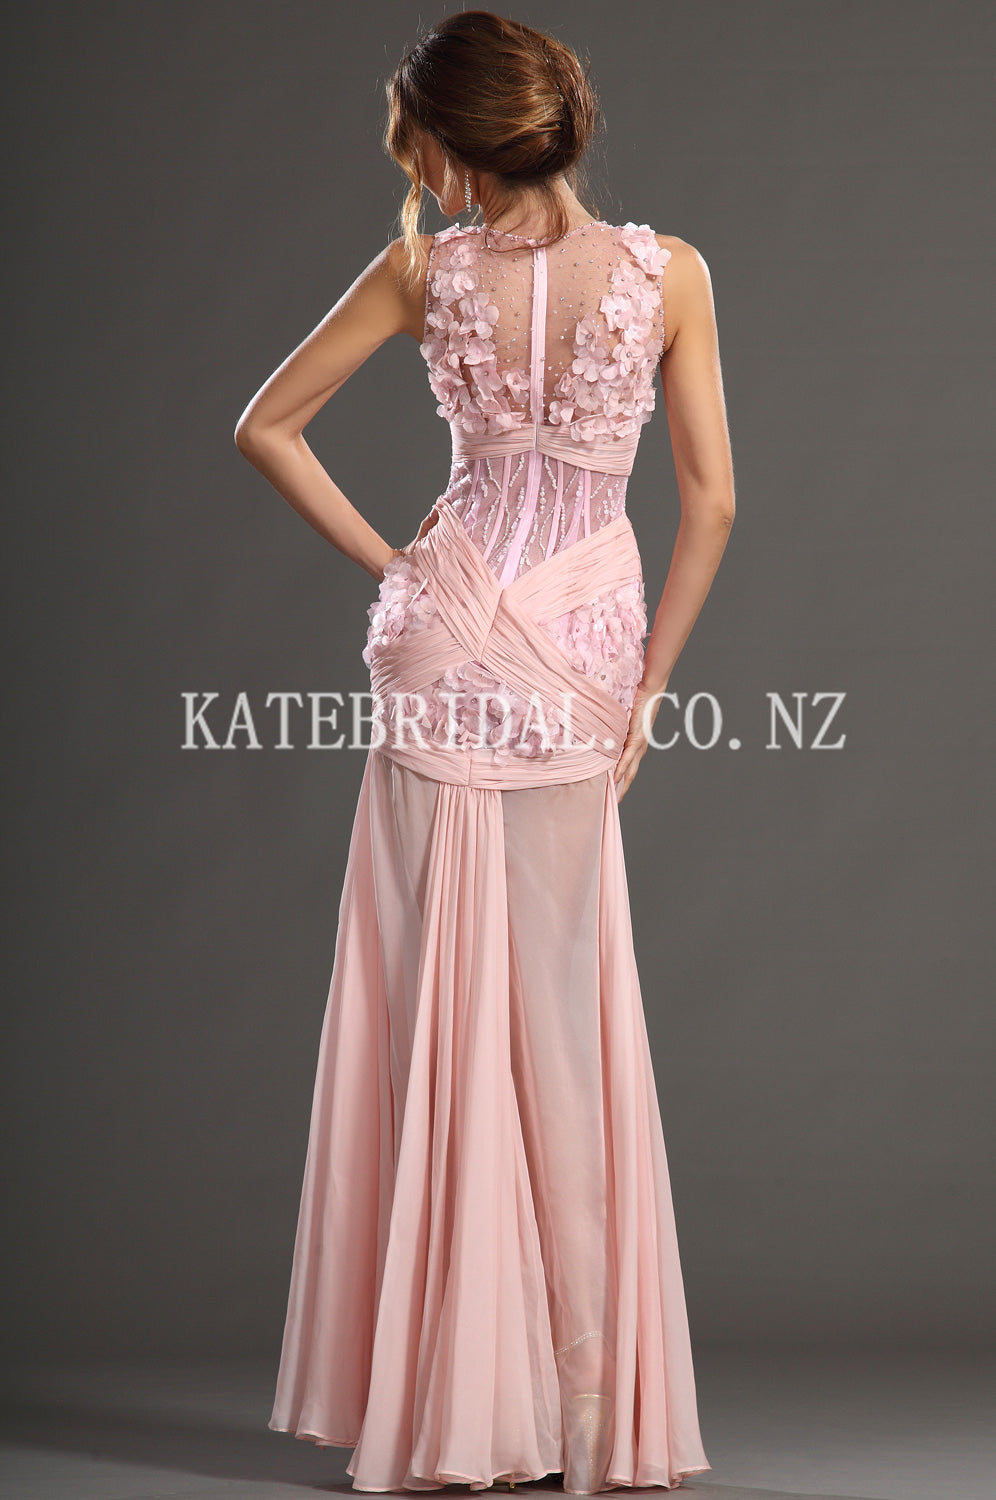 Beading Floral Illusion V-Neck Sleeveless Zipper-Up Floor-Length Chiffon Evening Dress